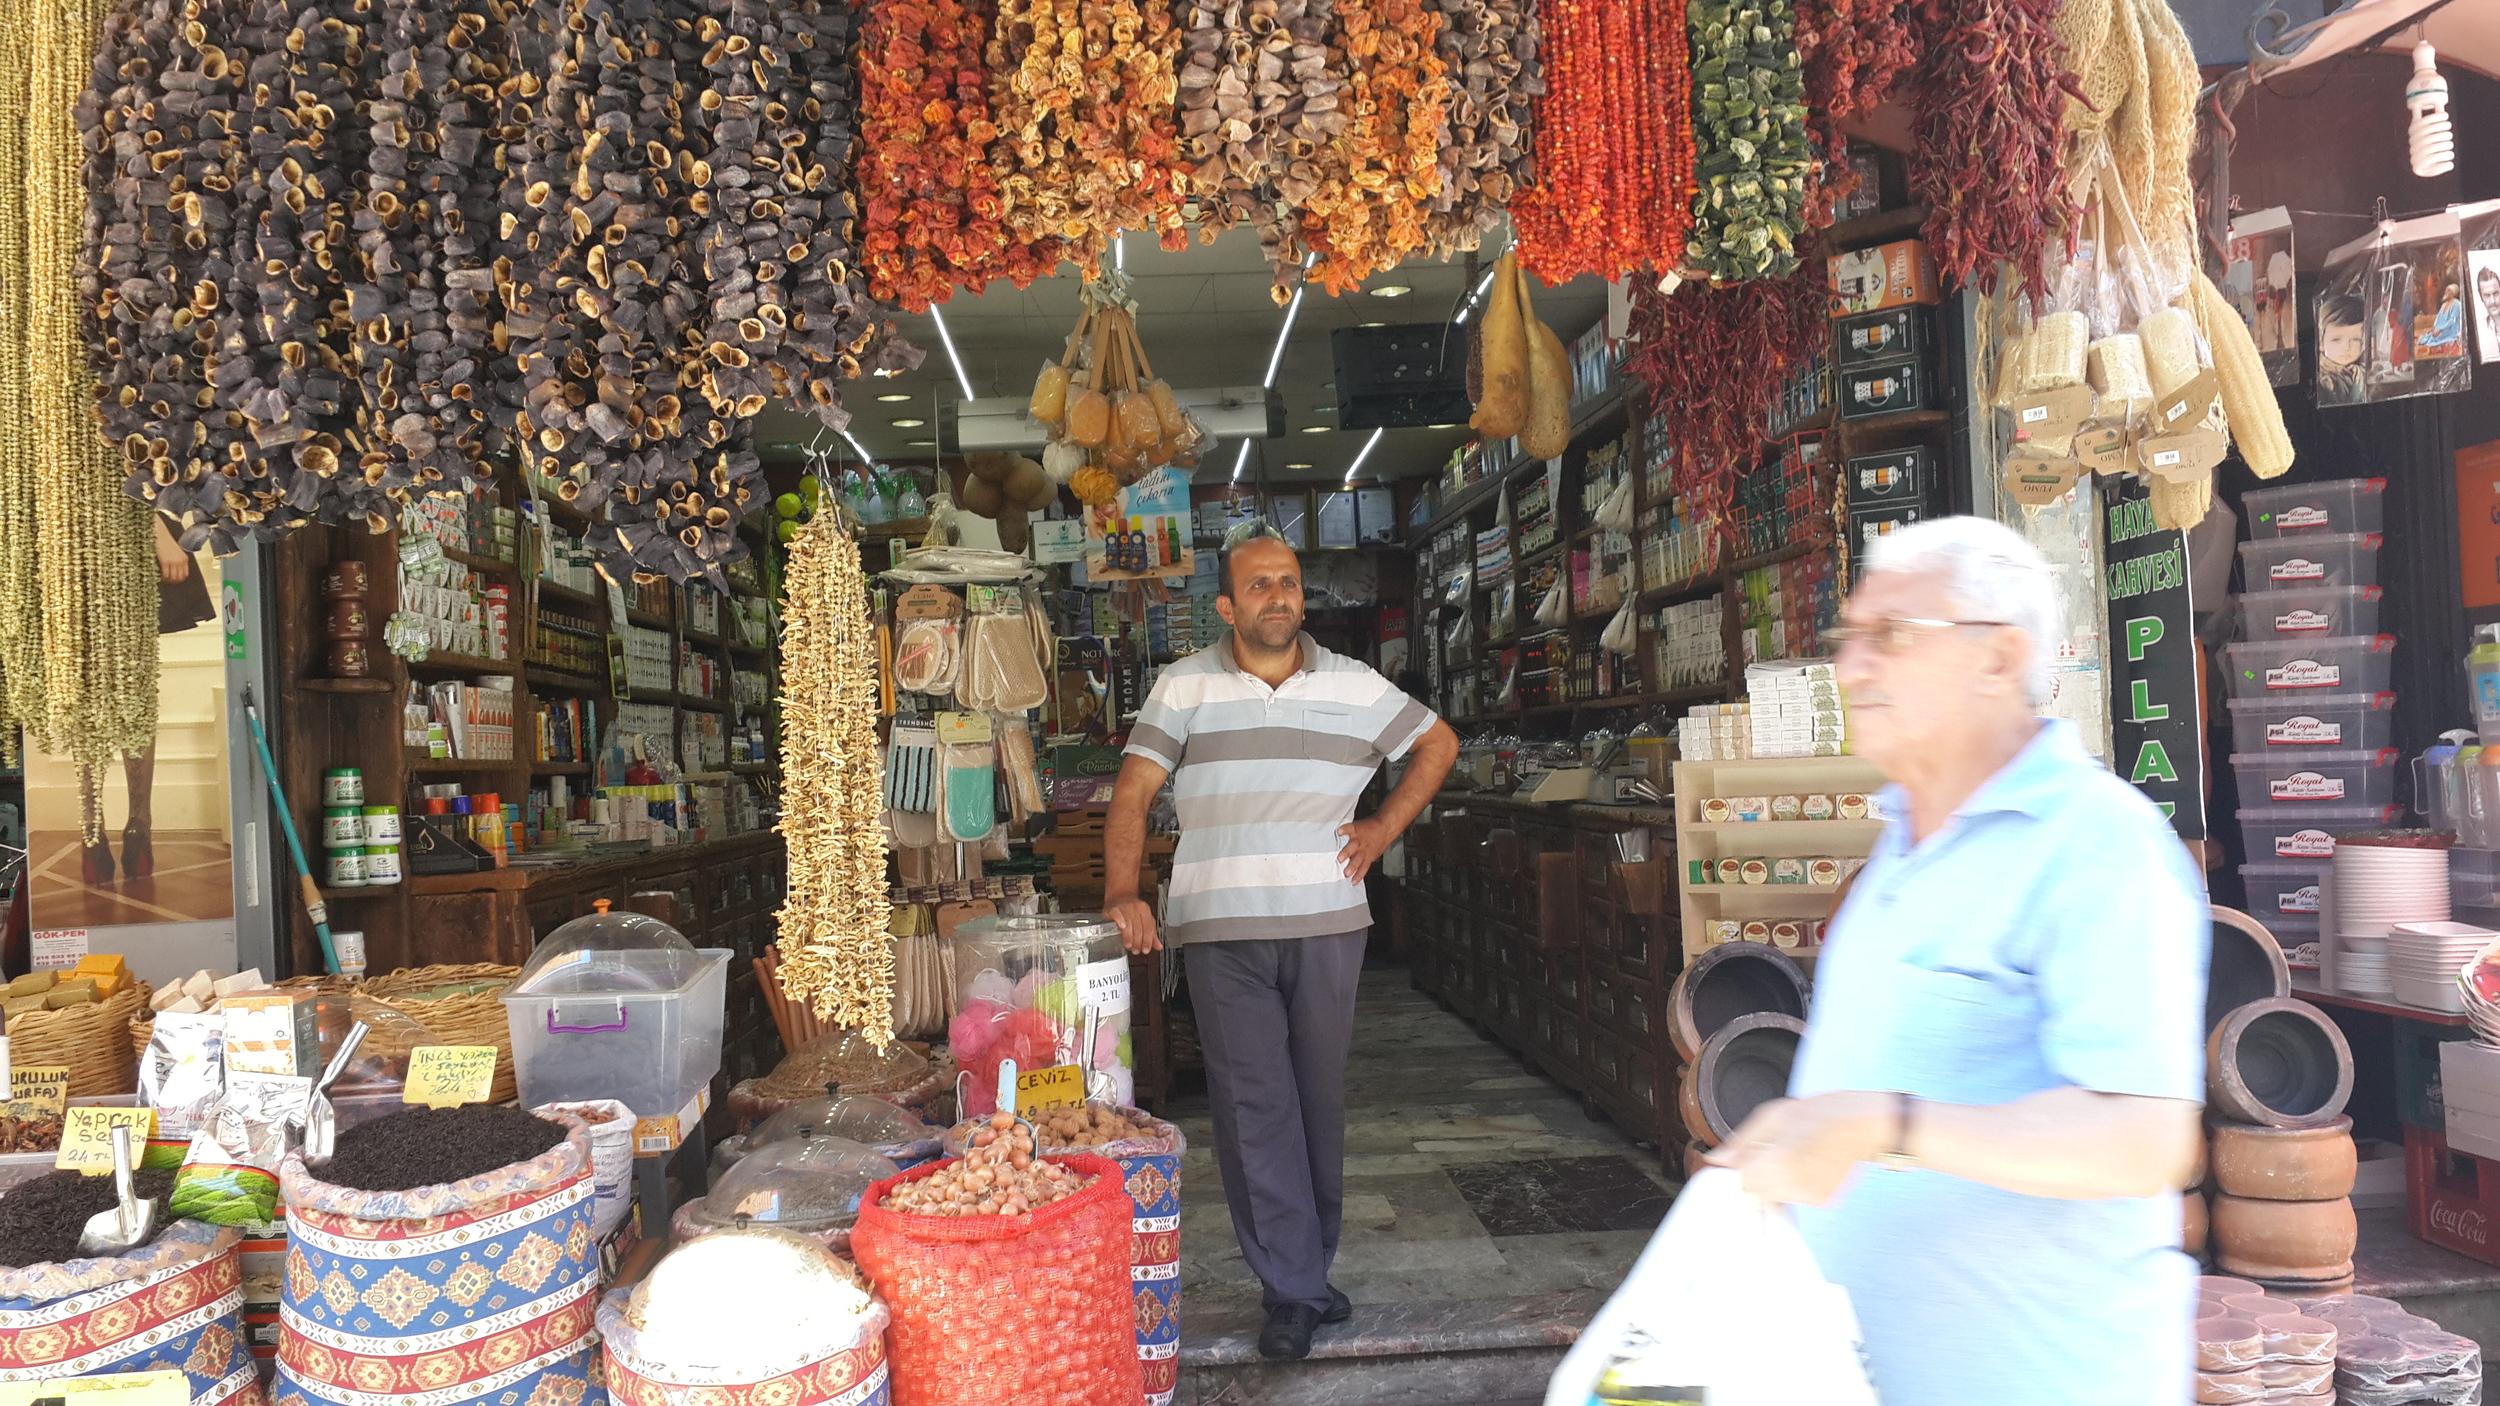 Market on the Asian side of Istanbul